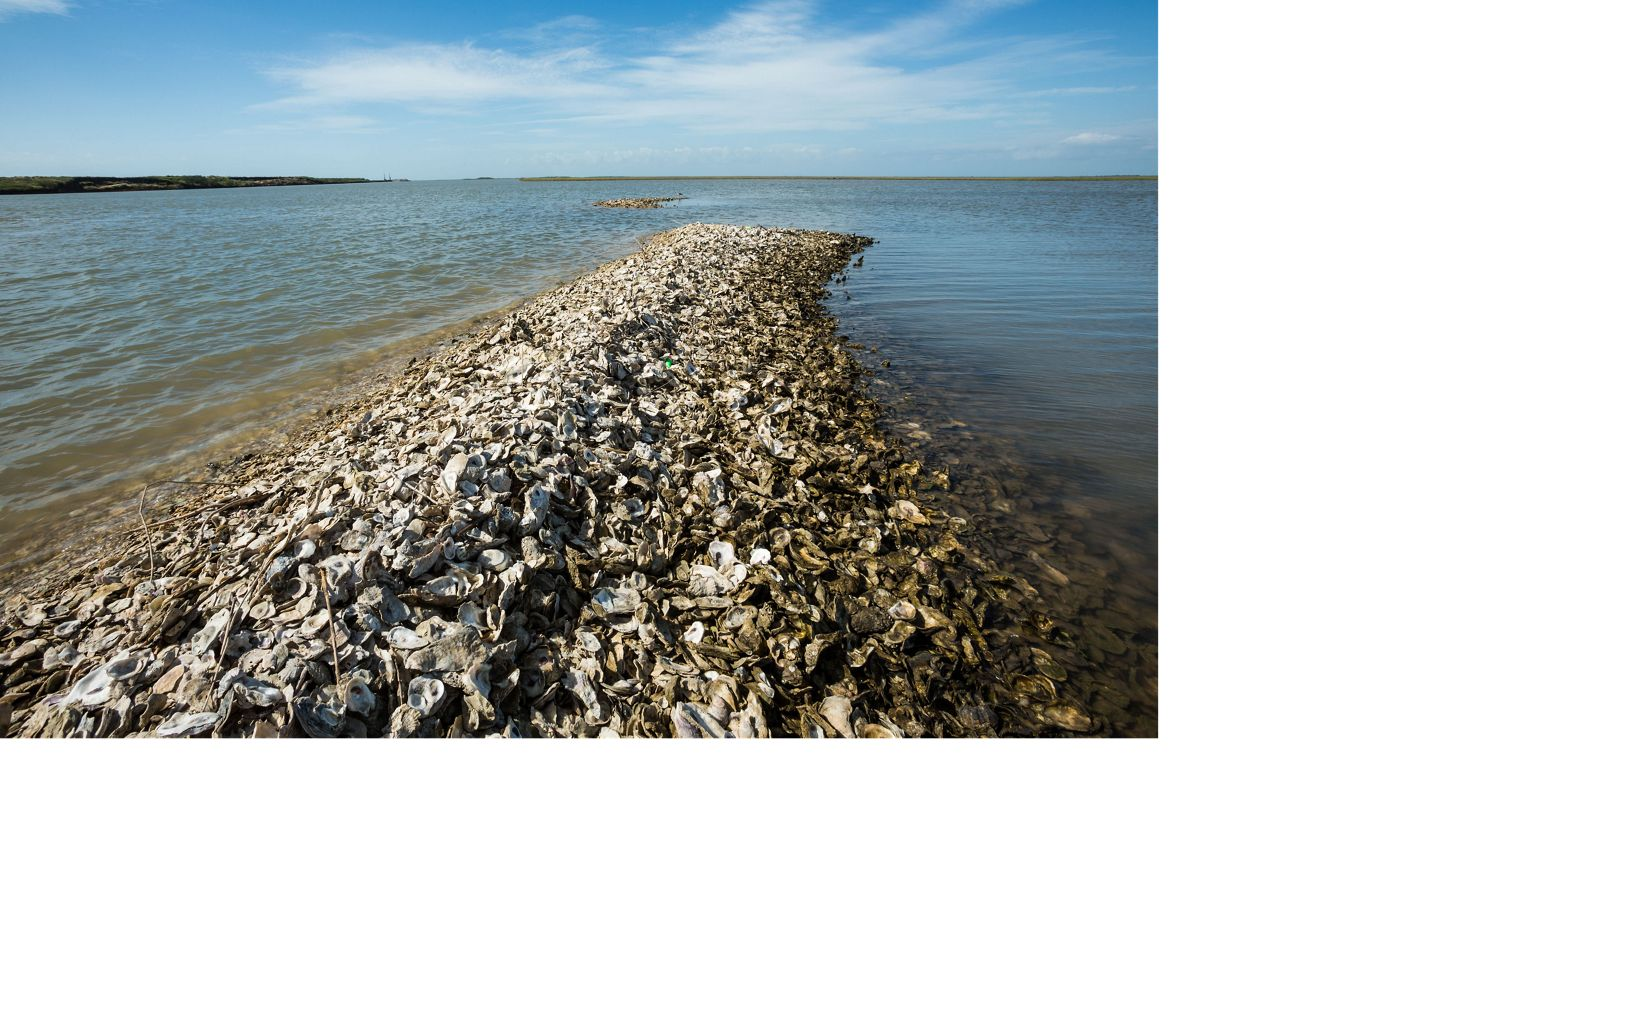 A row of oyster shells in the water.